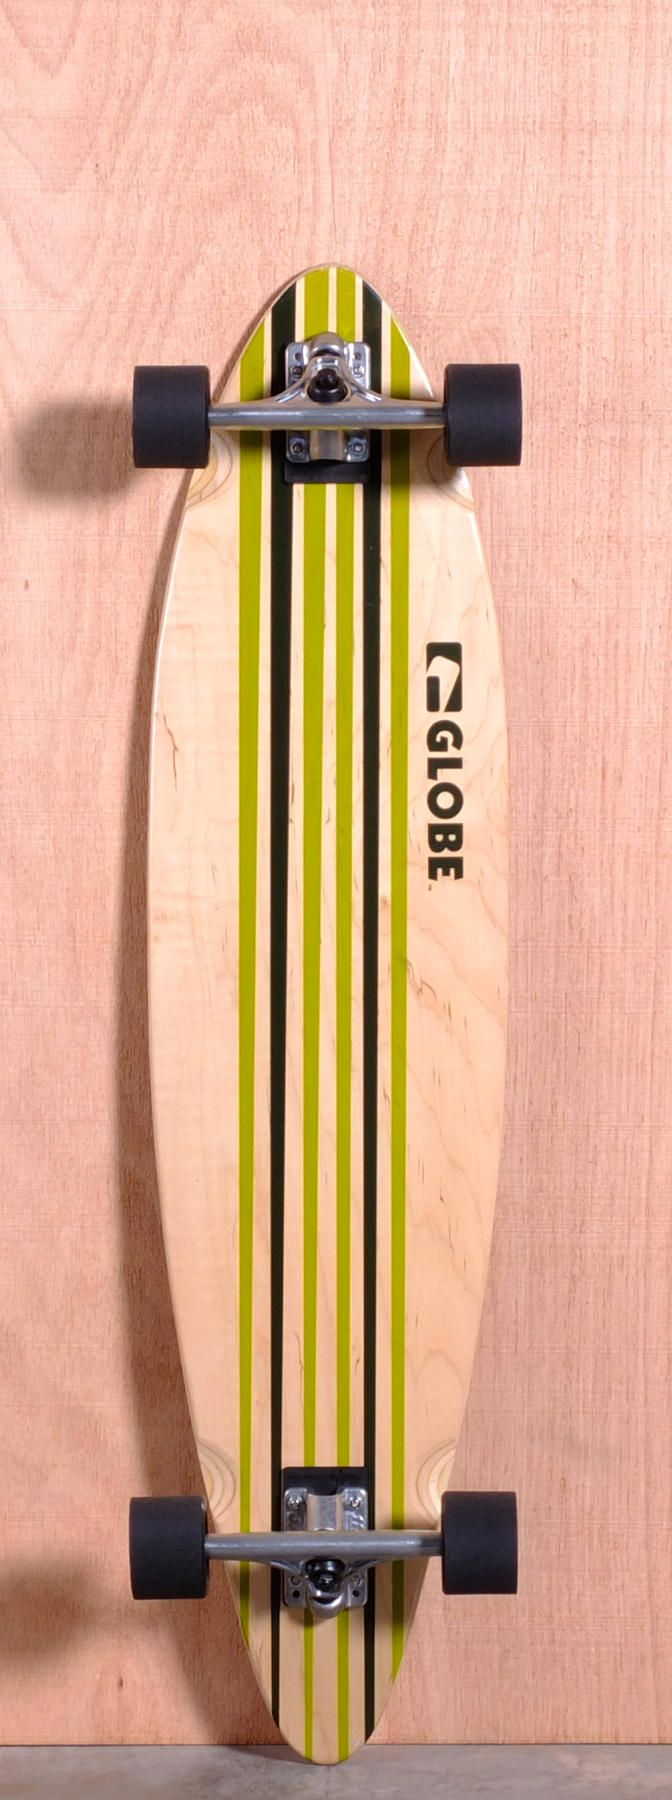 """The Globe Pinner Longboard Complete is designed for Cruising and Carving. Ships fully assembled and ready to skate!  Function: Cruising, Carving  Features: Concave, Kick Tail  Material: 7 Ply Maple  Length: 41""""  Width: 9.875""""  Wheelbase: 30.5""""  Thickness: 7/16""""  Hole Pattern: New School  Grip: Clear"""